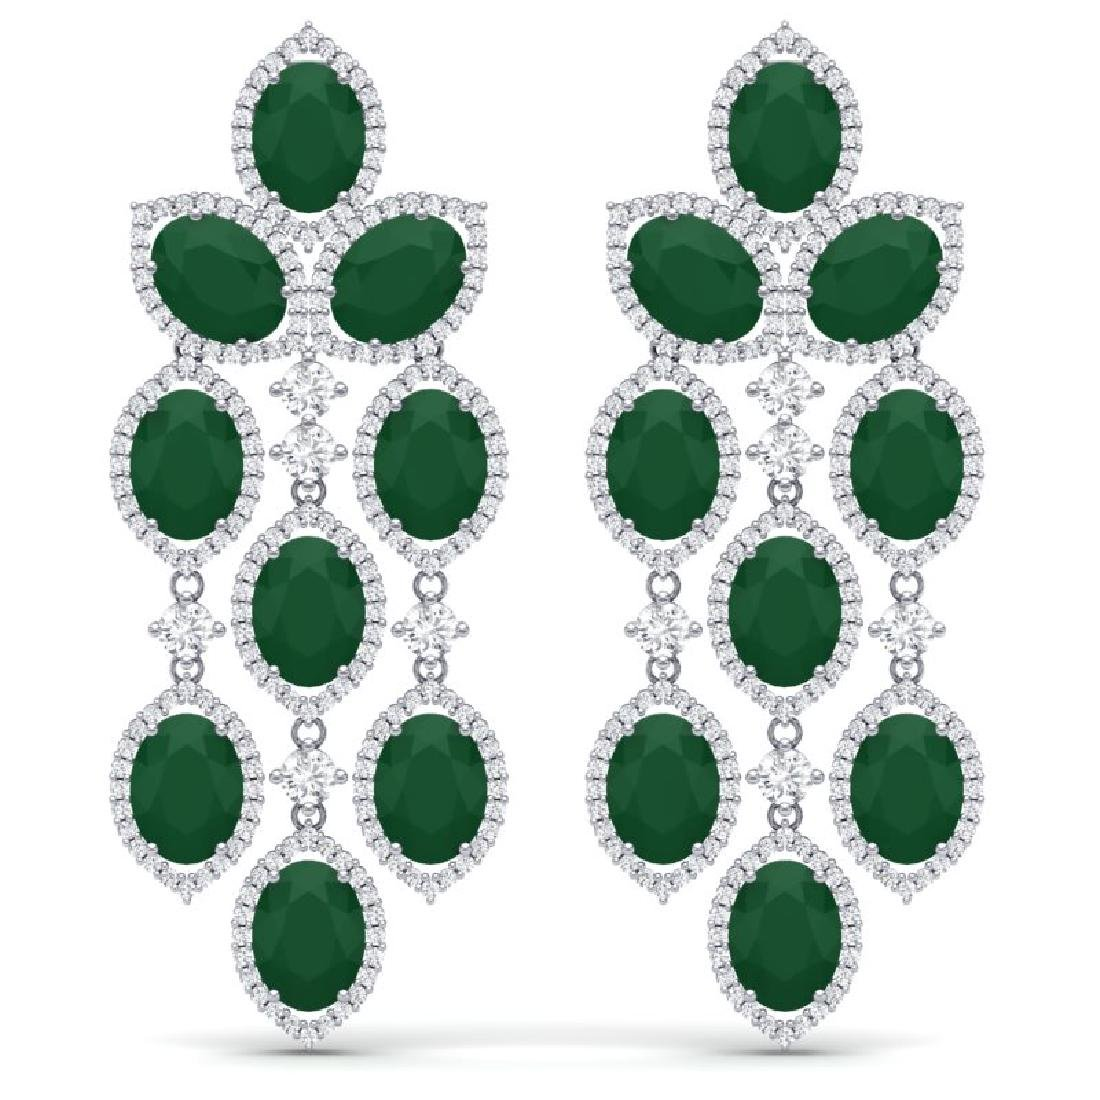 26.15 CTW Royalty Emerald & VS Diamond Earrings 18K